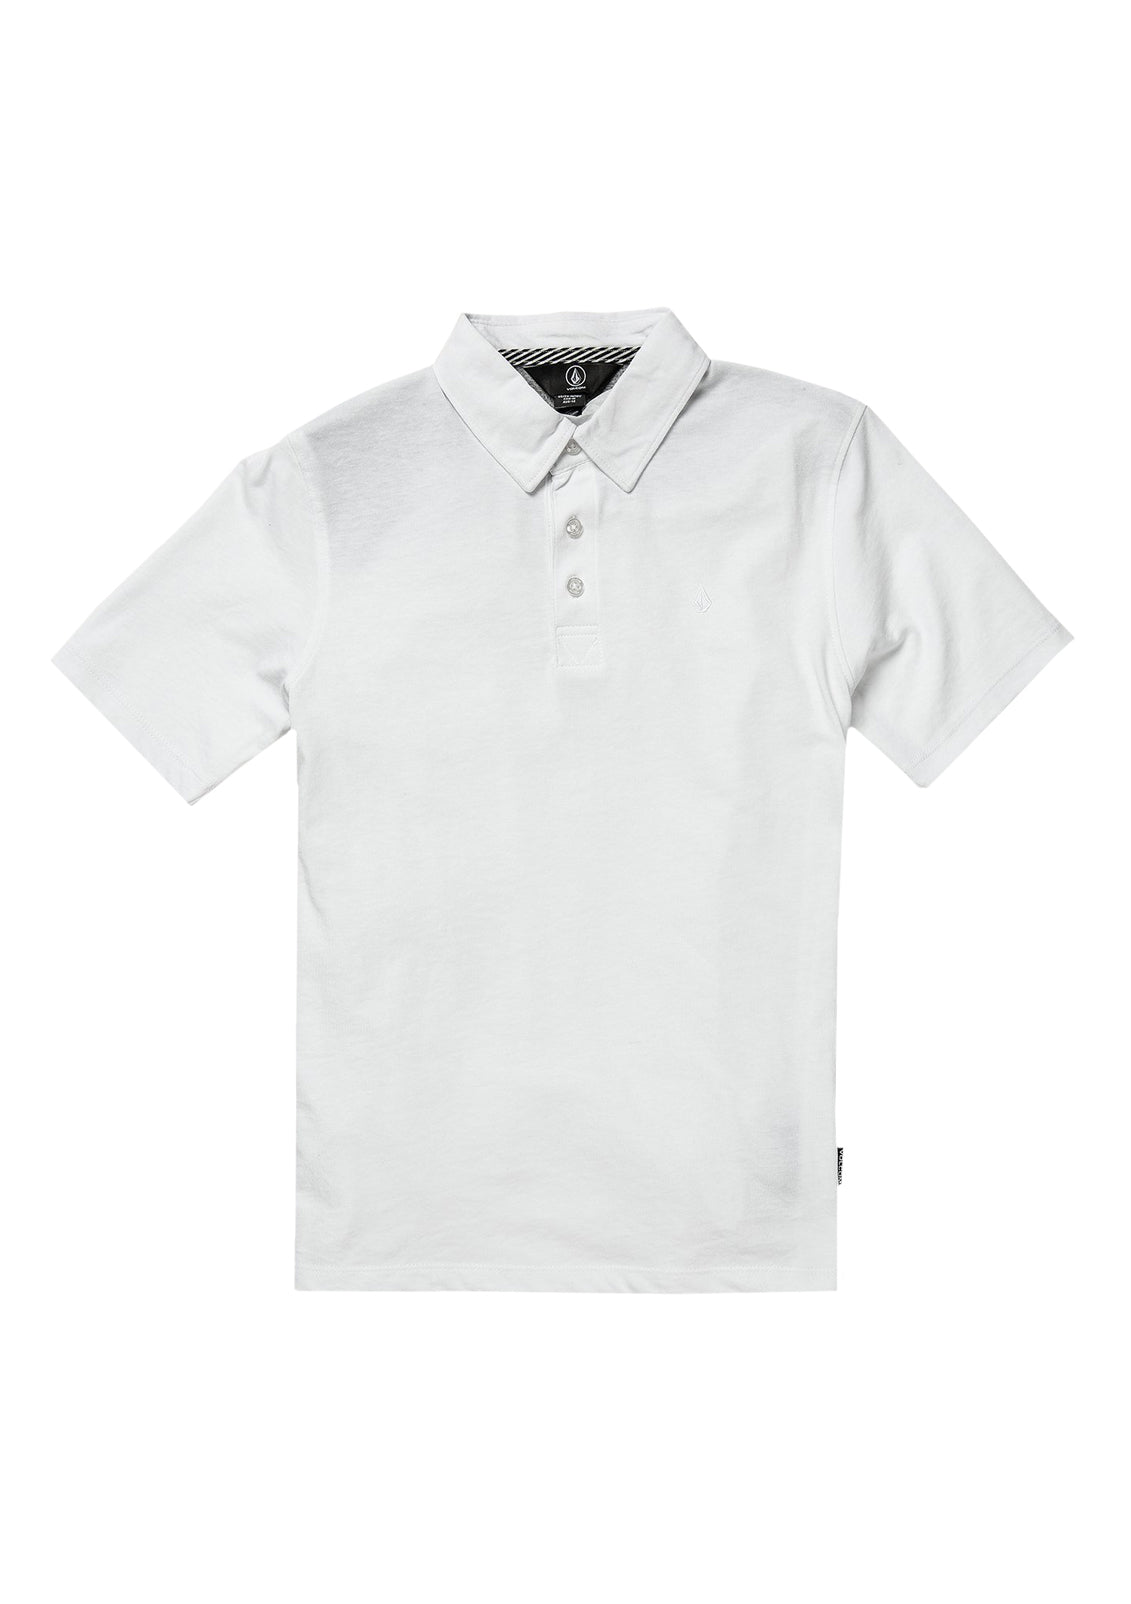 Boys Wowzer Polo